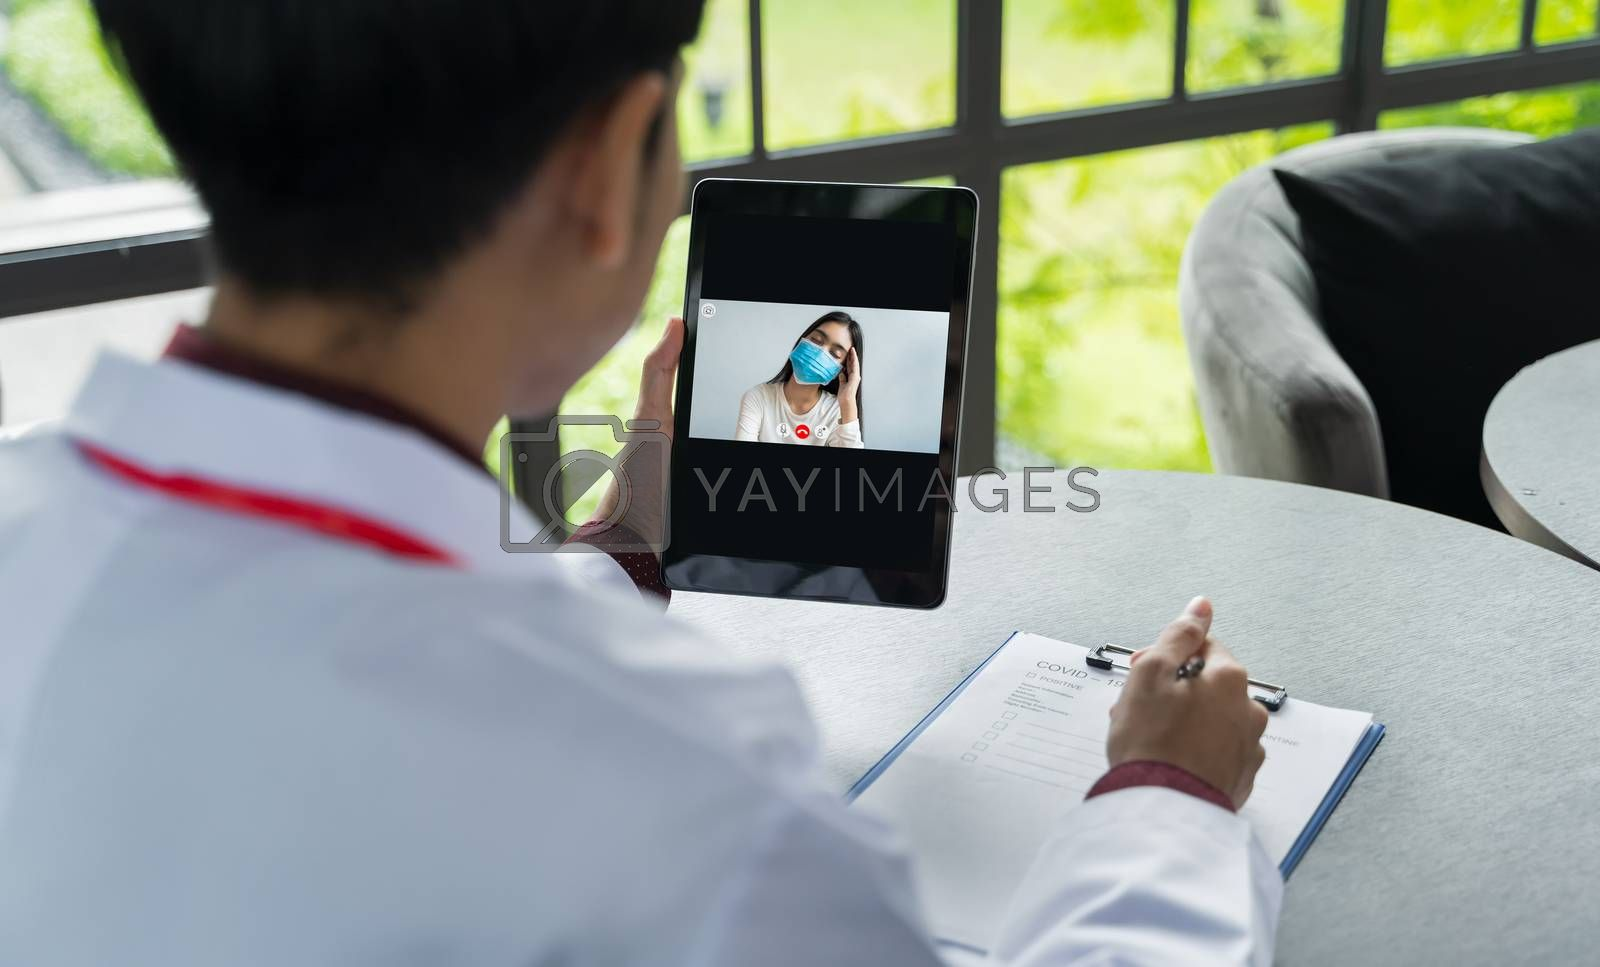 The doctor's back view is communicating with the patient wear a mask via tablets. Doctors are using Telemedicine technology to interact with patients via video conference for keep social distancing